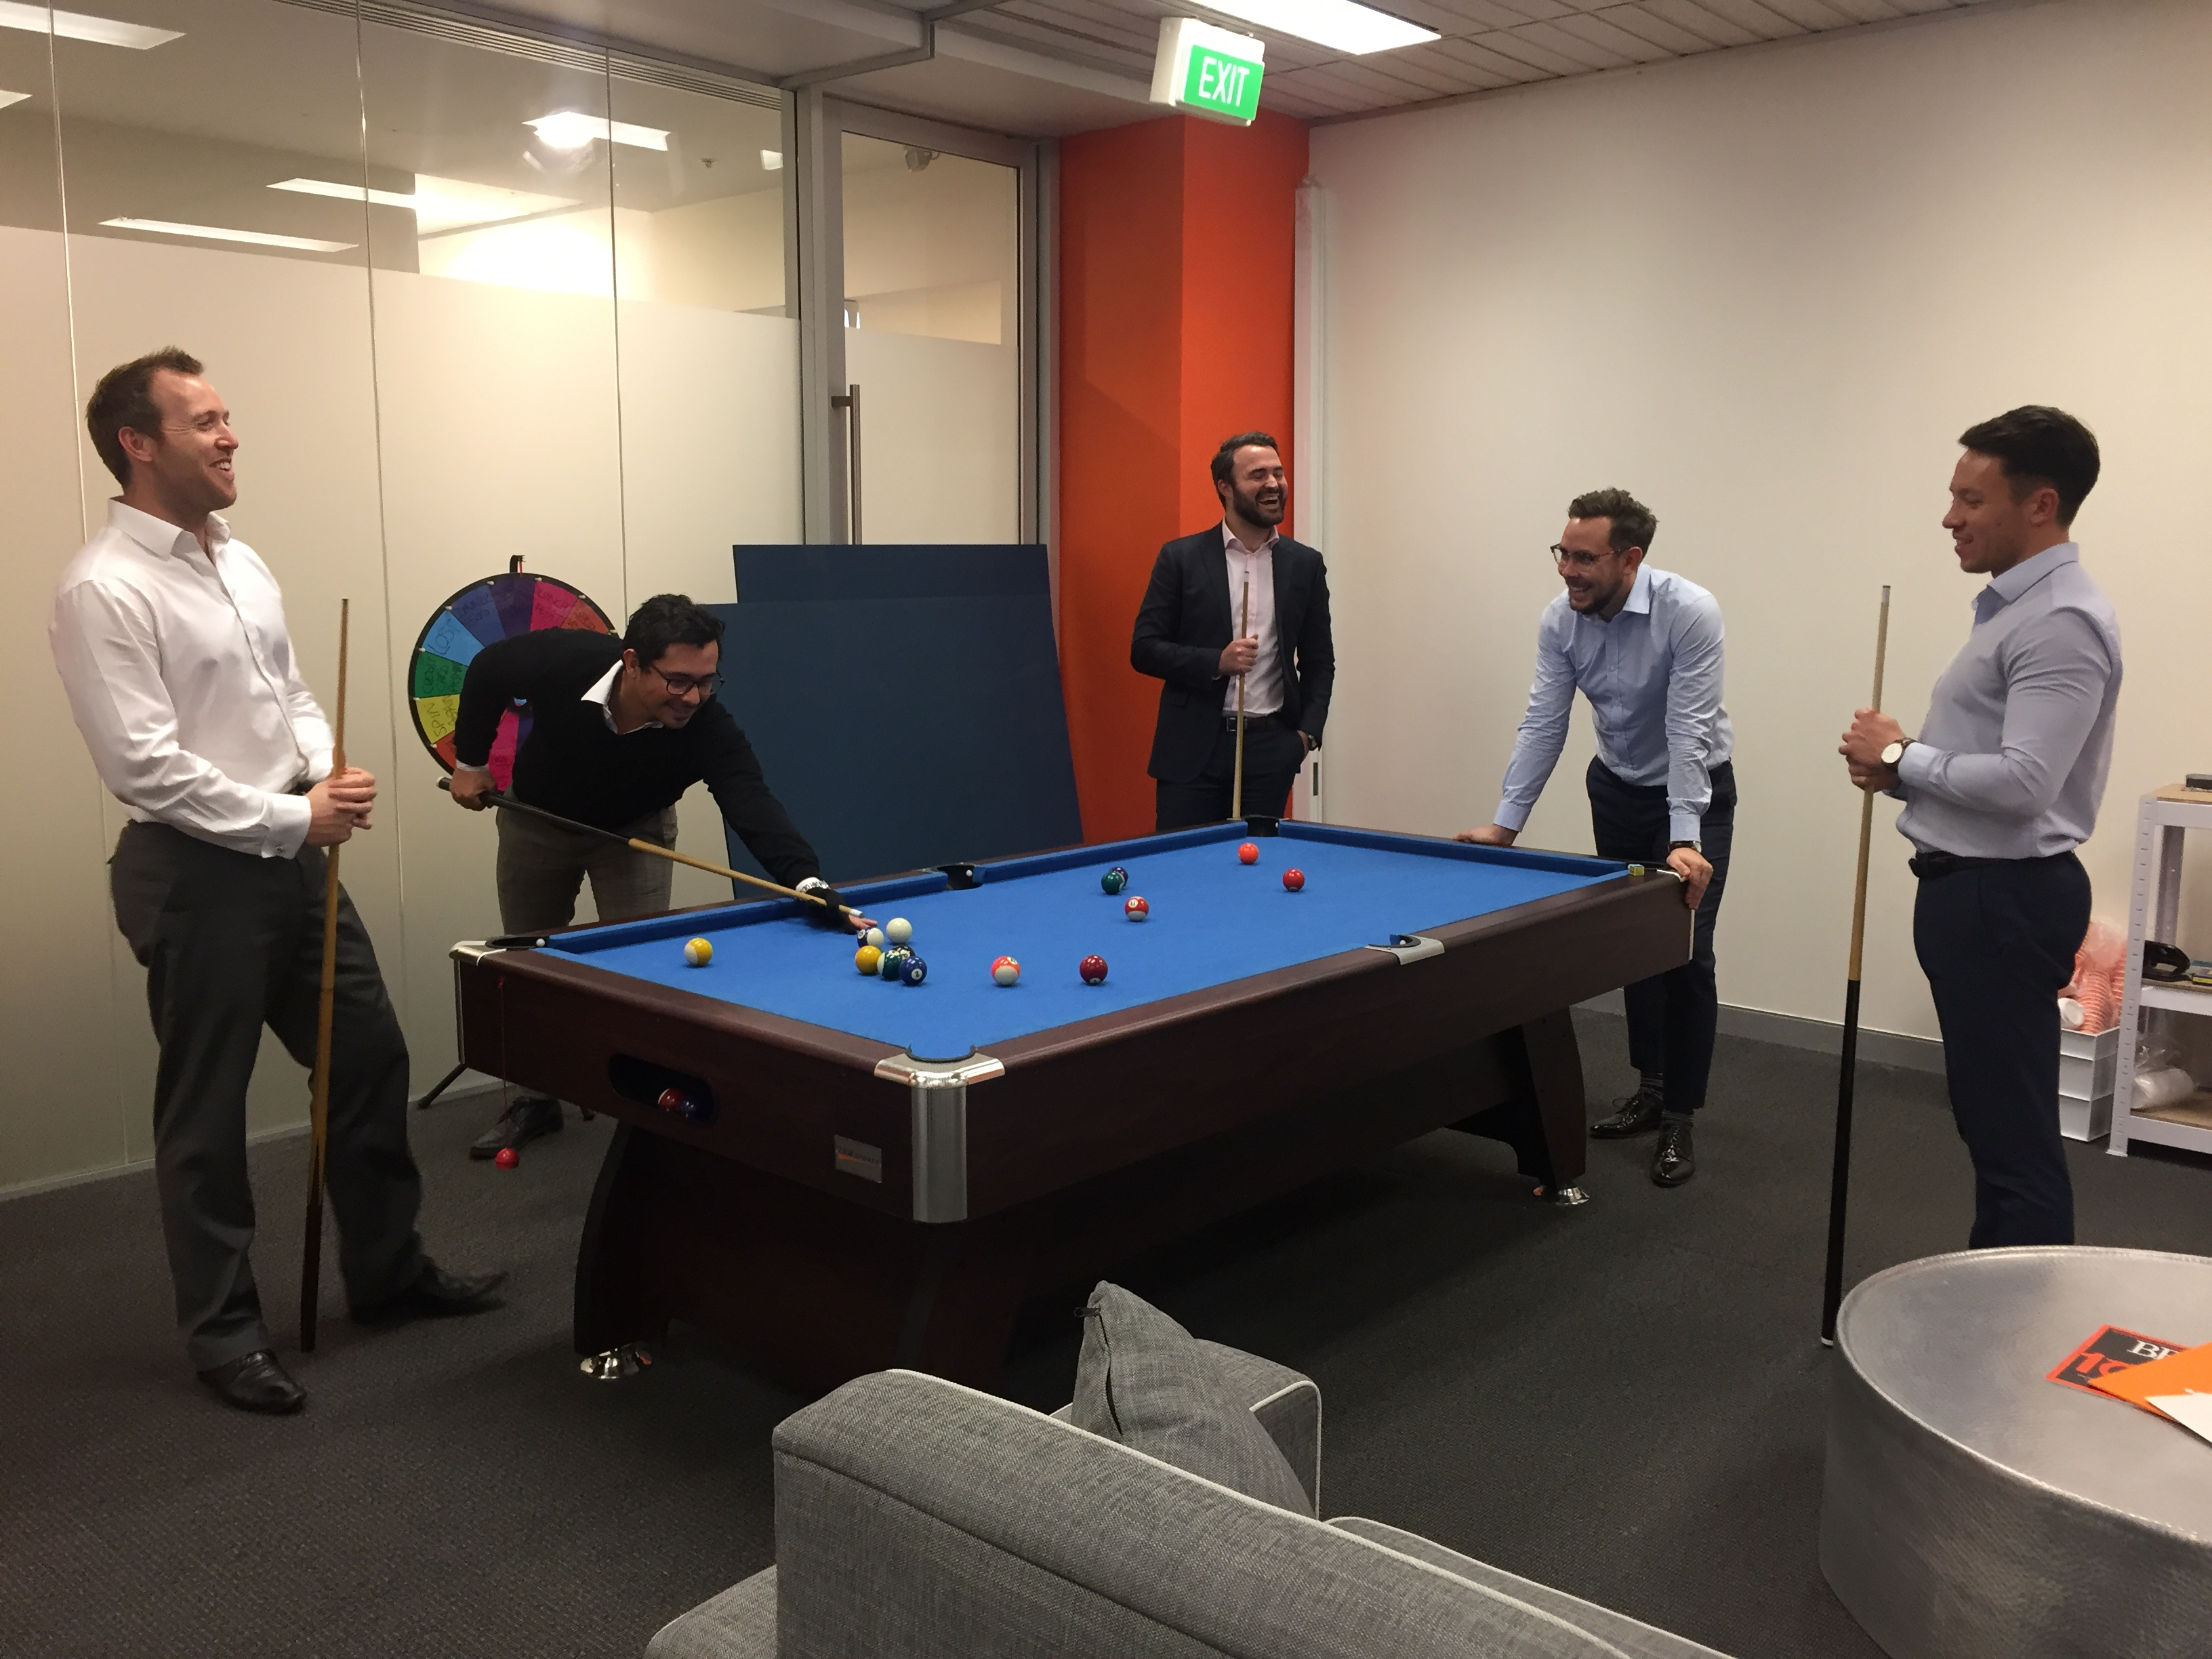 Sydney Office: Pool Table